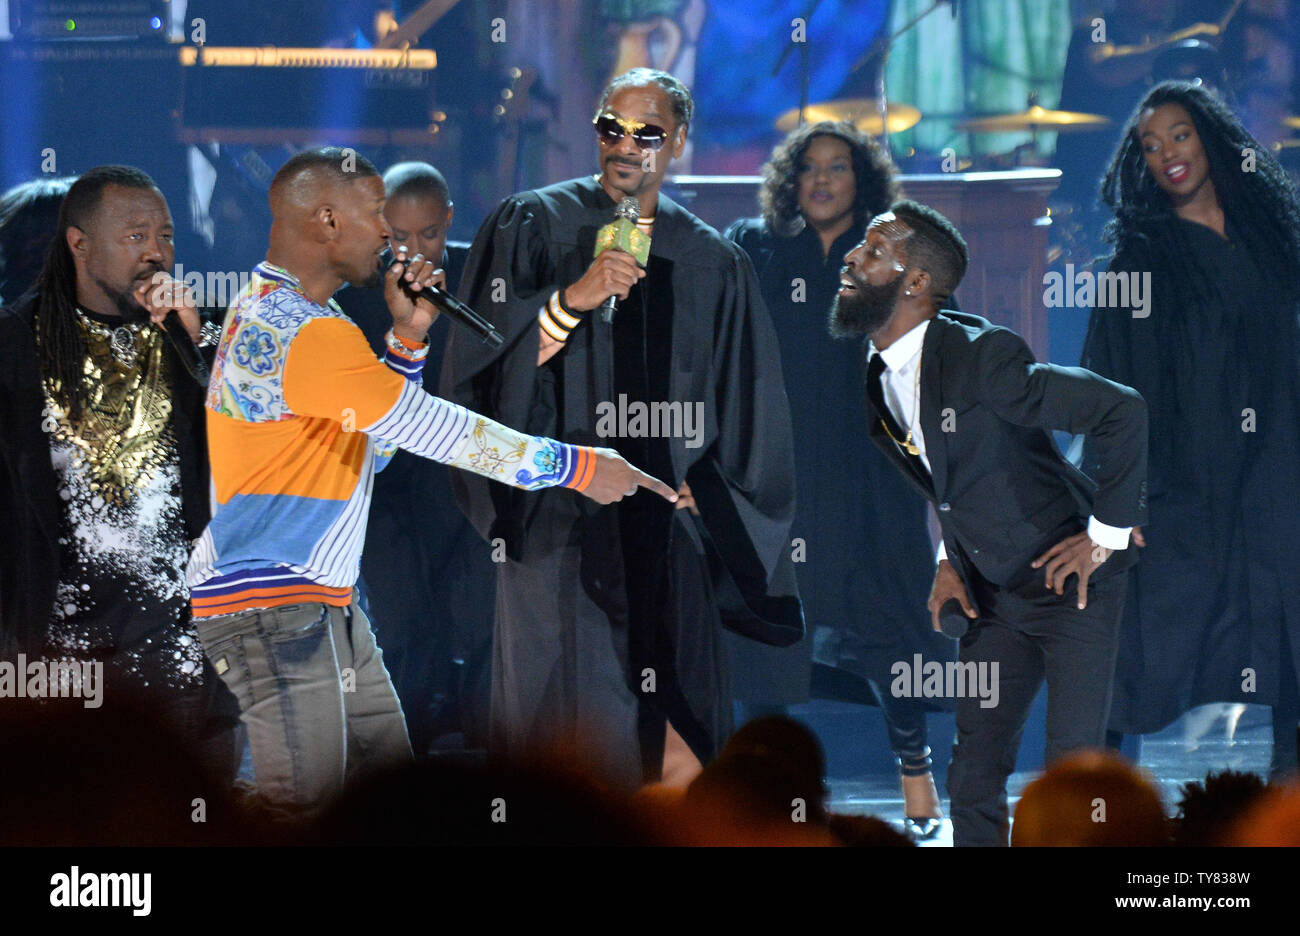 Jamie Foxx, Snoop Dogg and Tye Tribbett perform during the